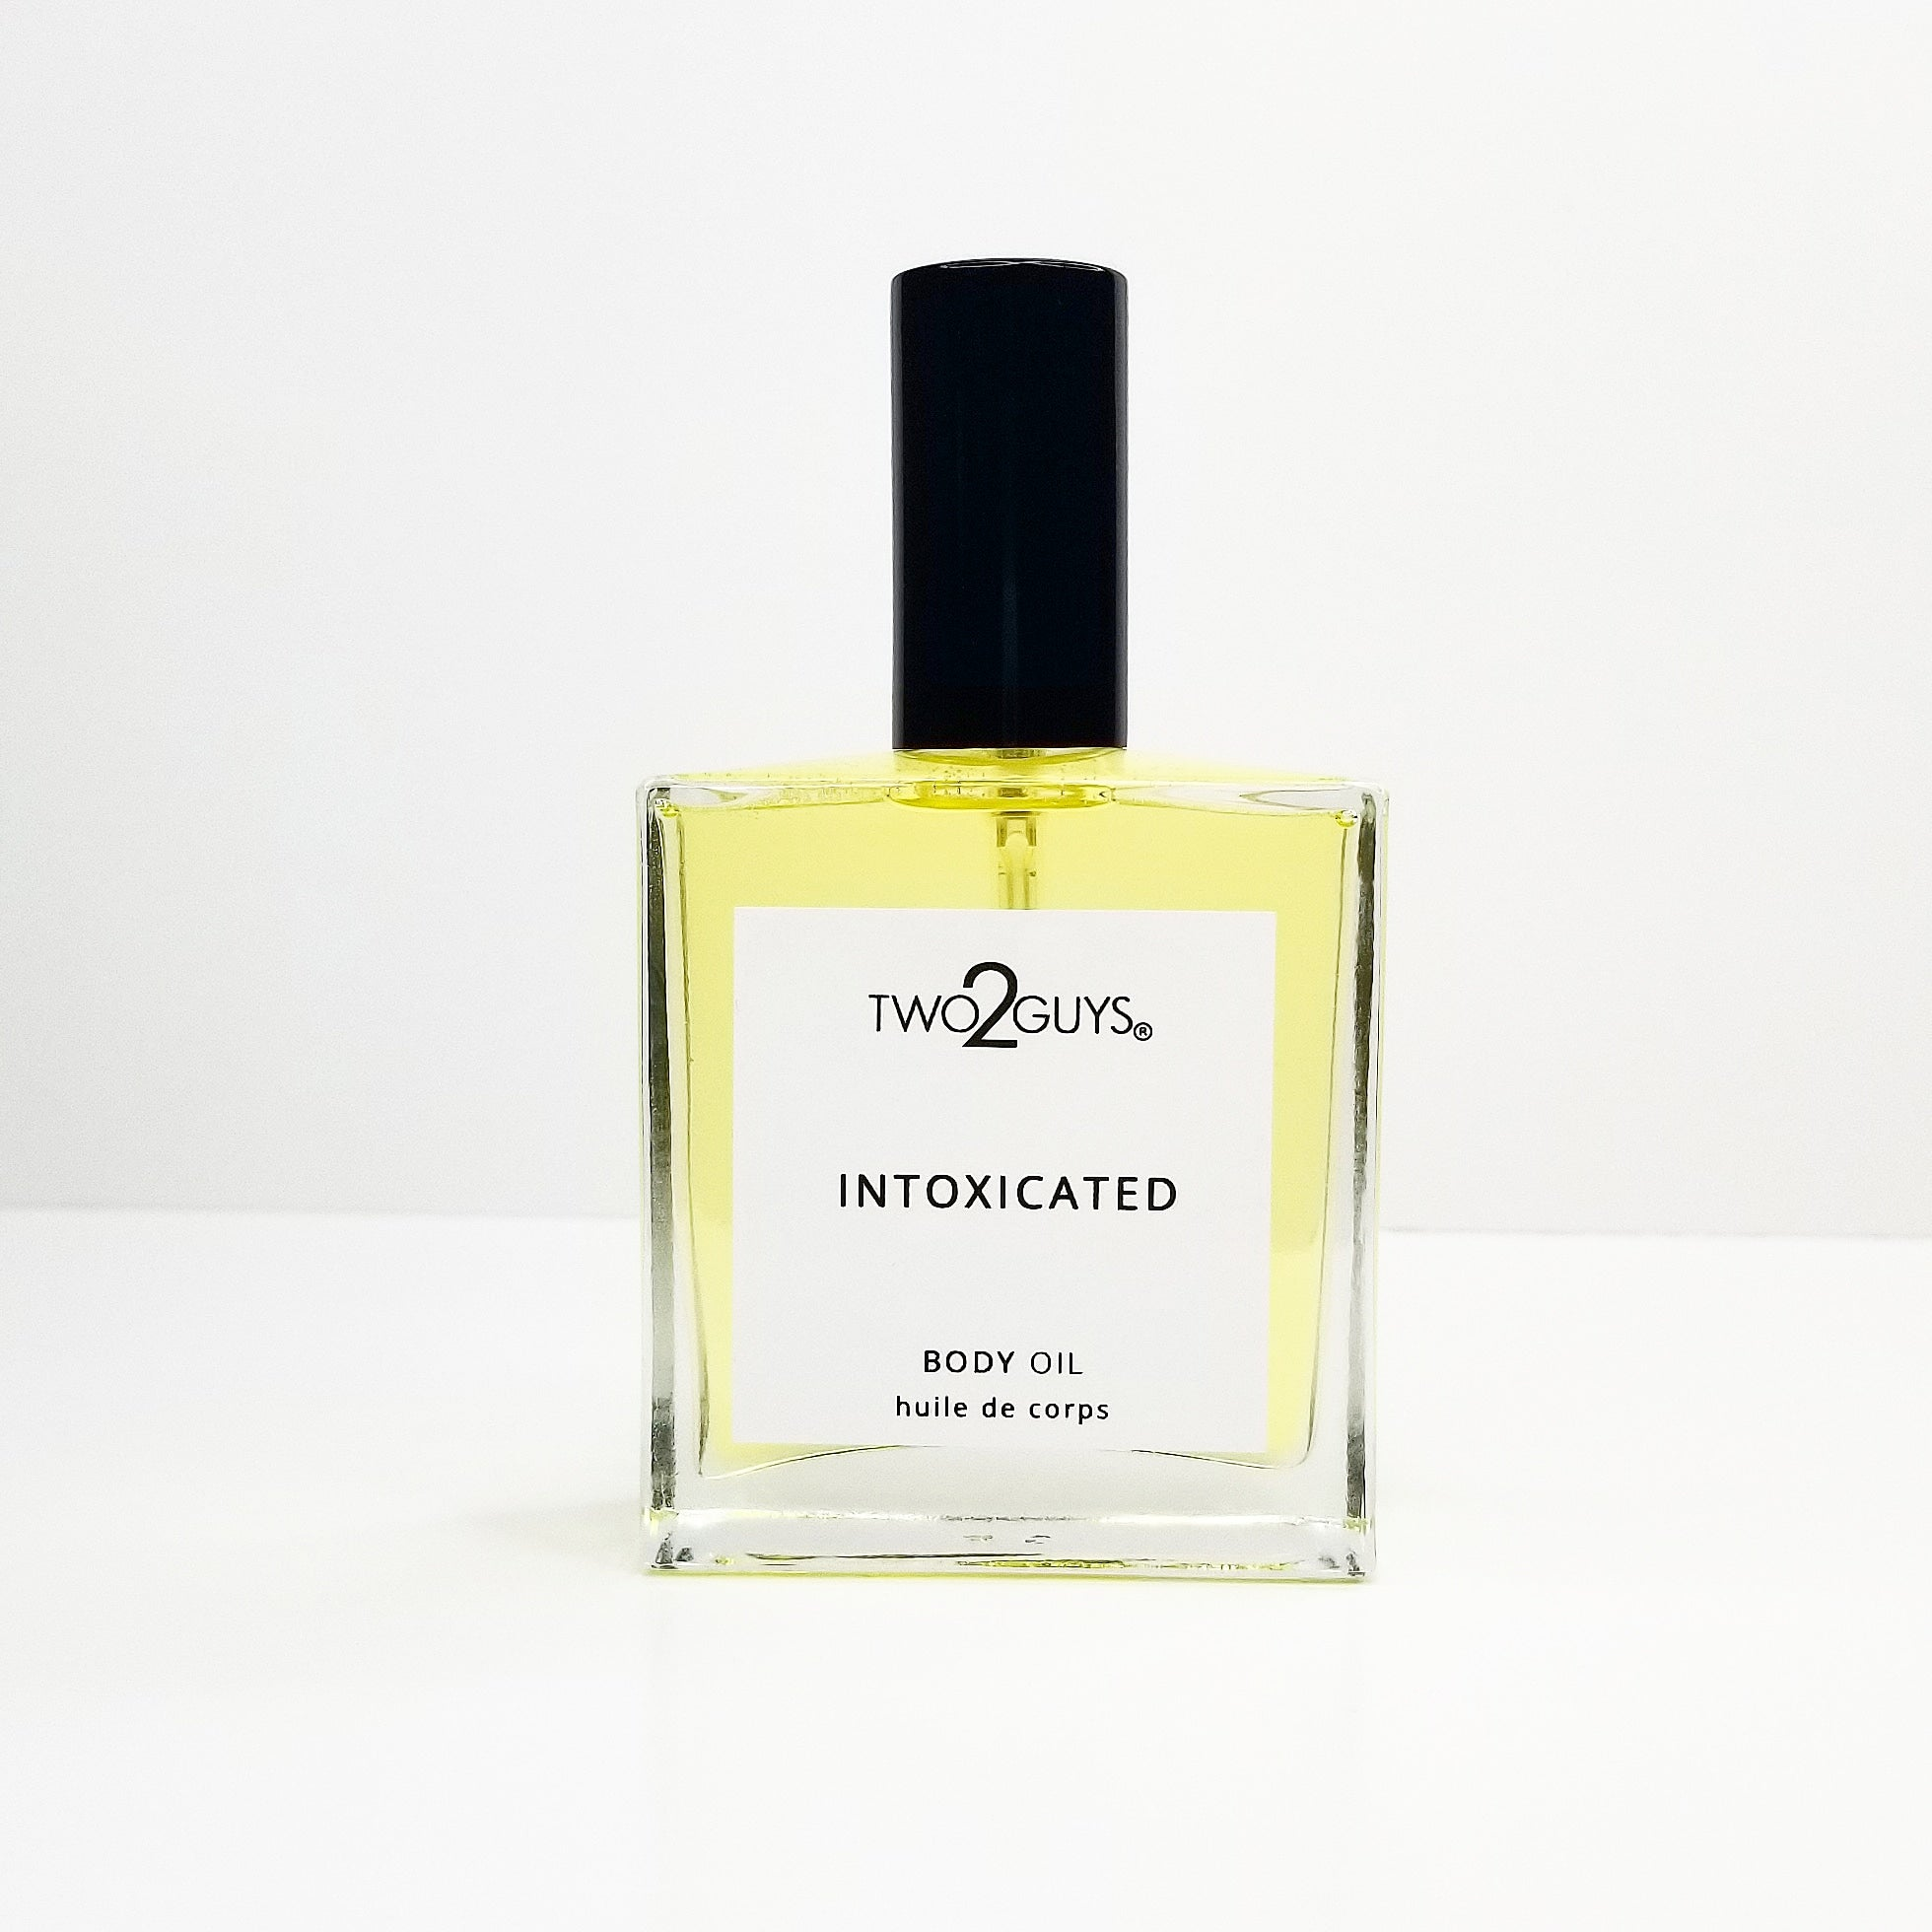 INTOXICATED  Body Oil